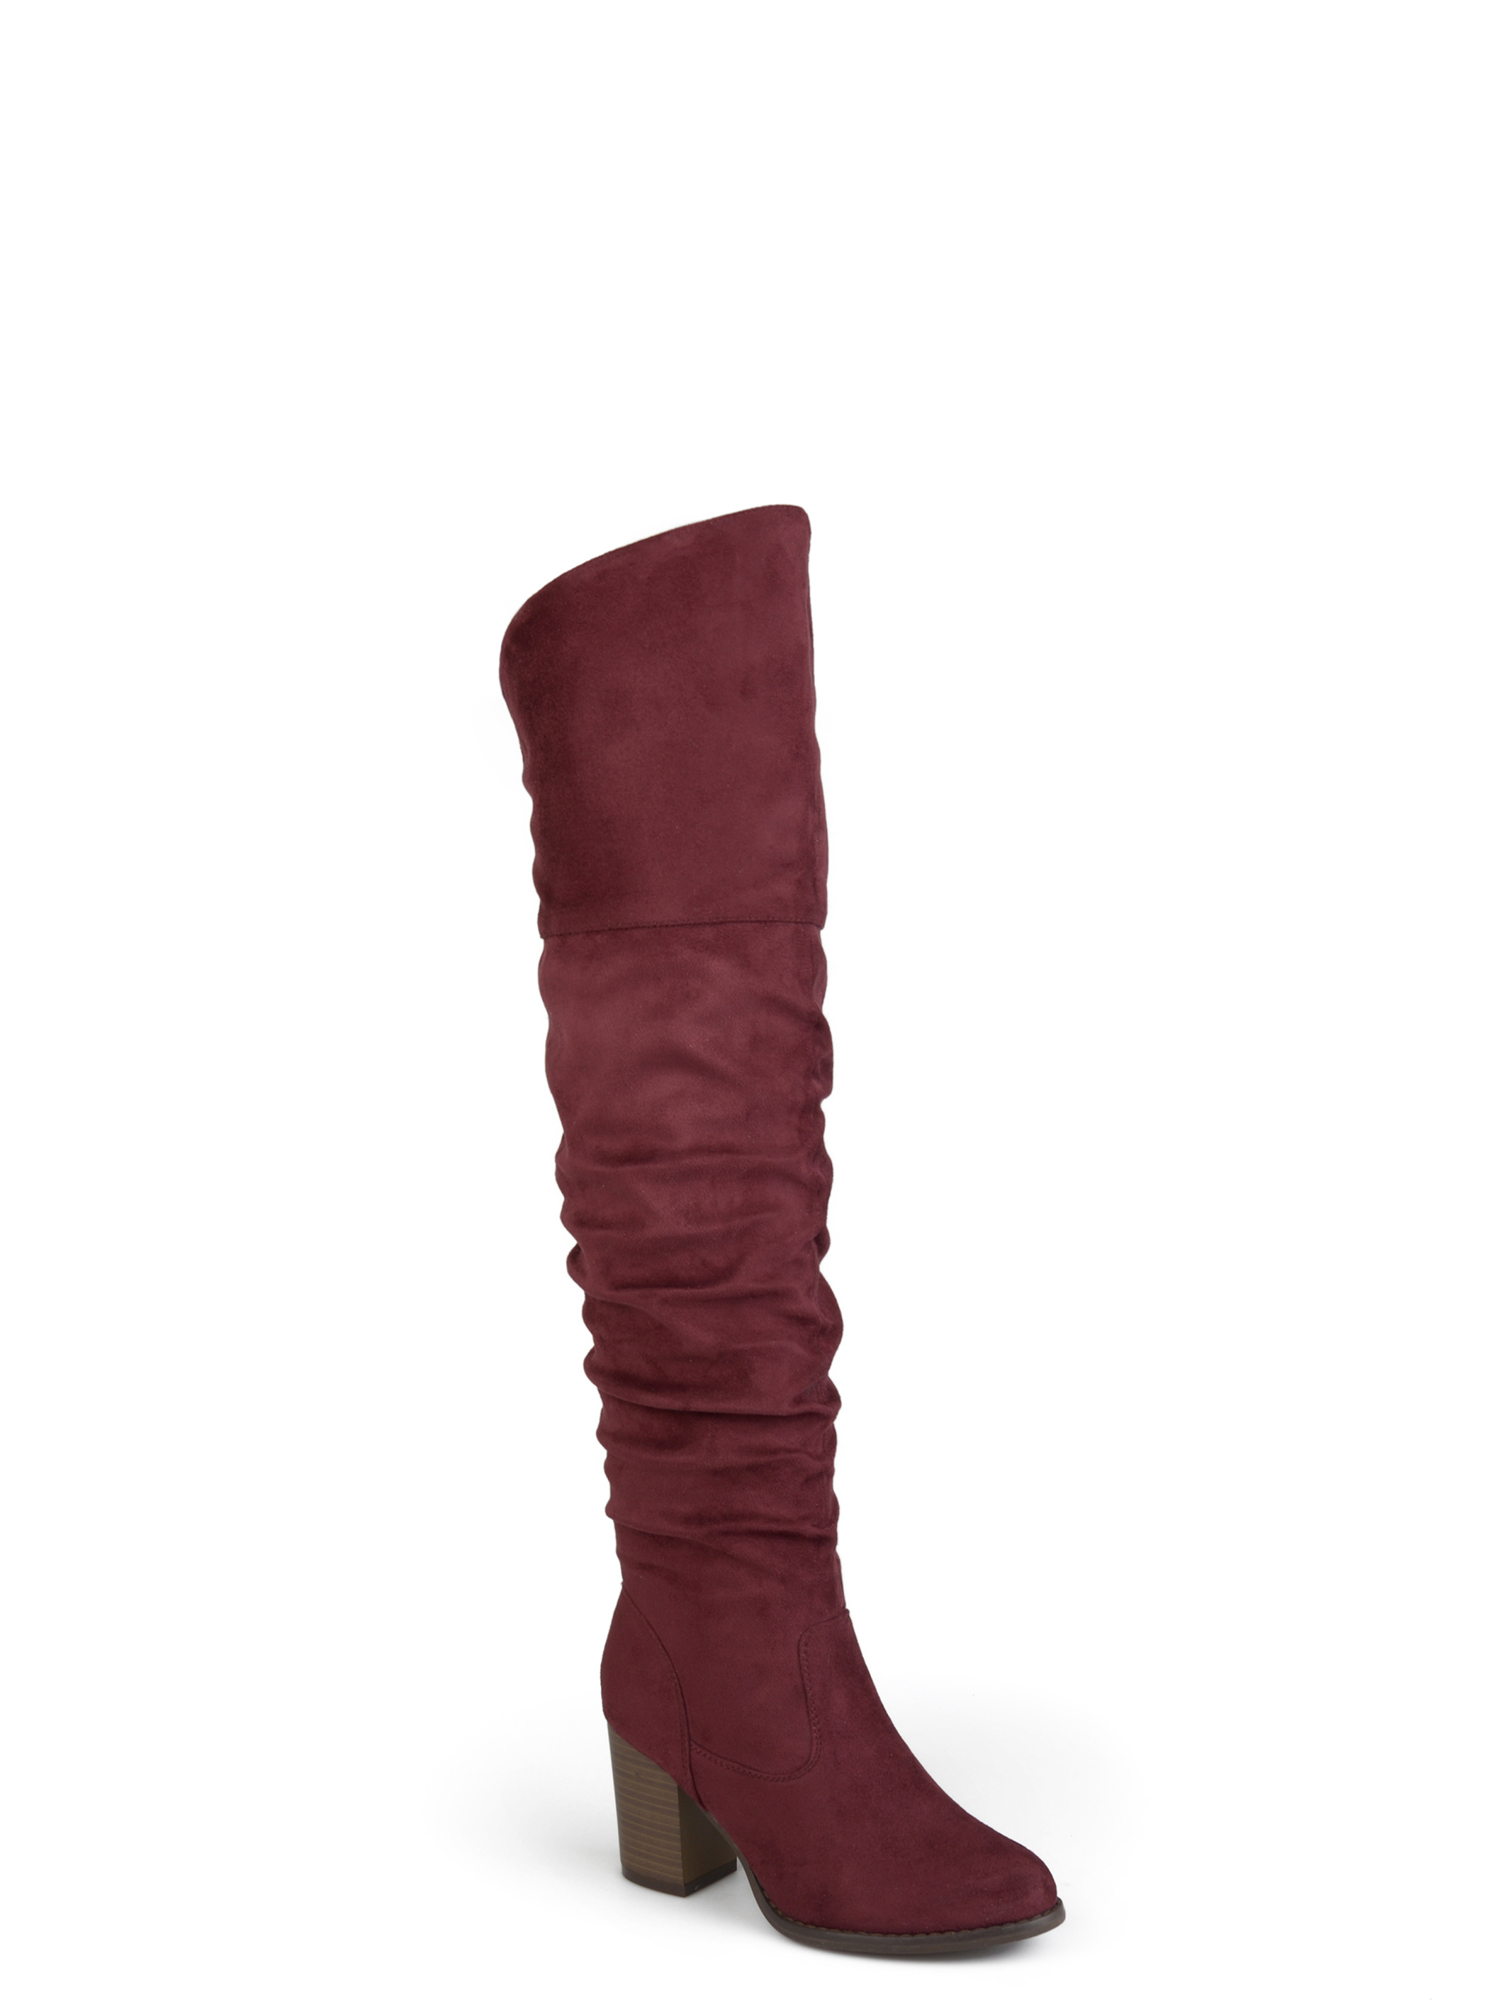 fbb2c287d92 Women s Wide Calf Ruched Stacked Heel Faux Suede Over-the-knee Boots -  Walmart.com